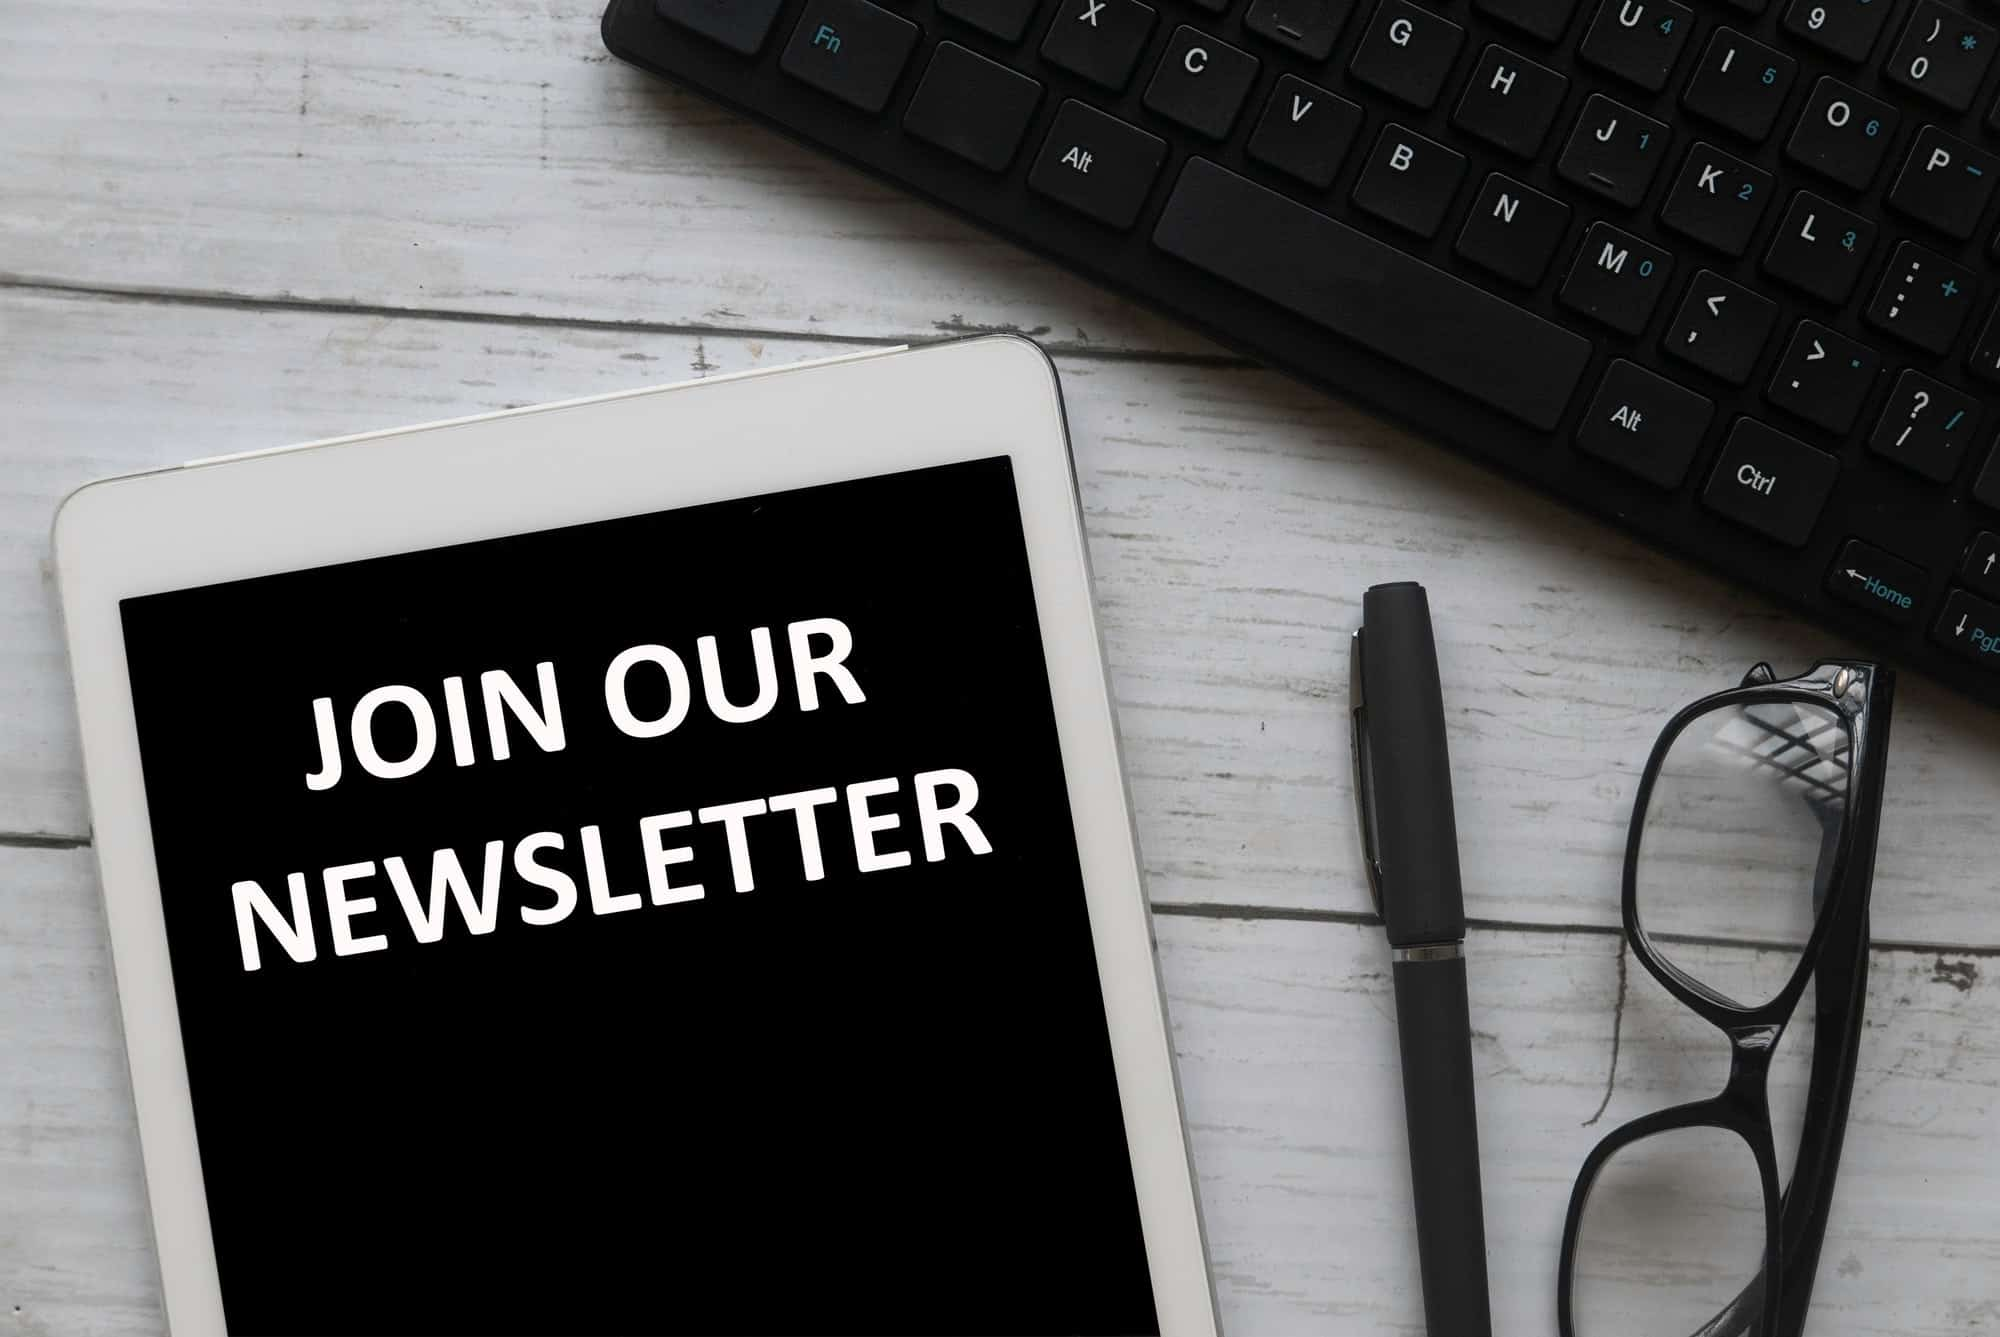 Join our newsletter concept